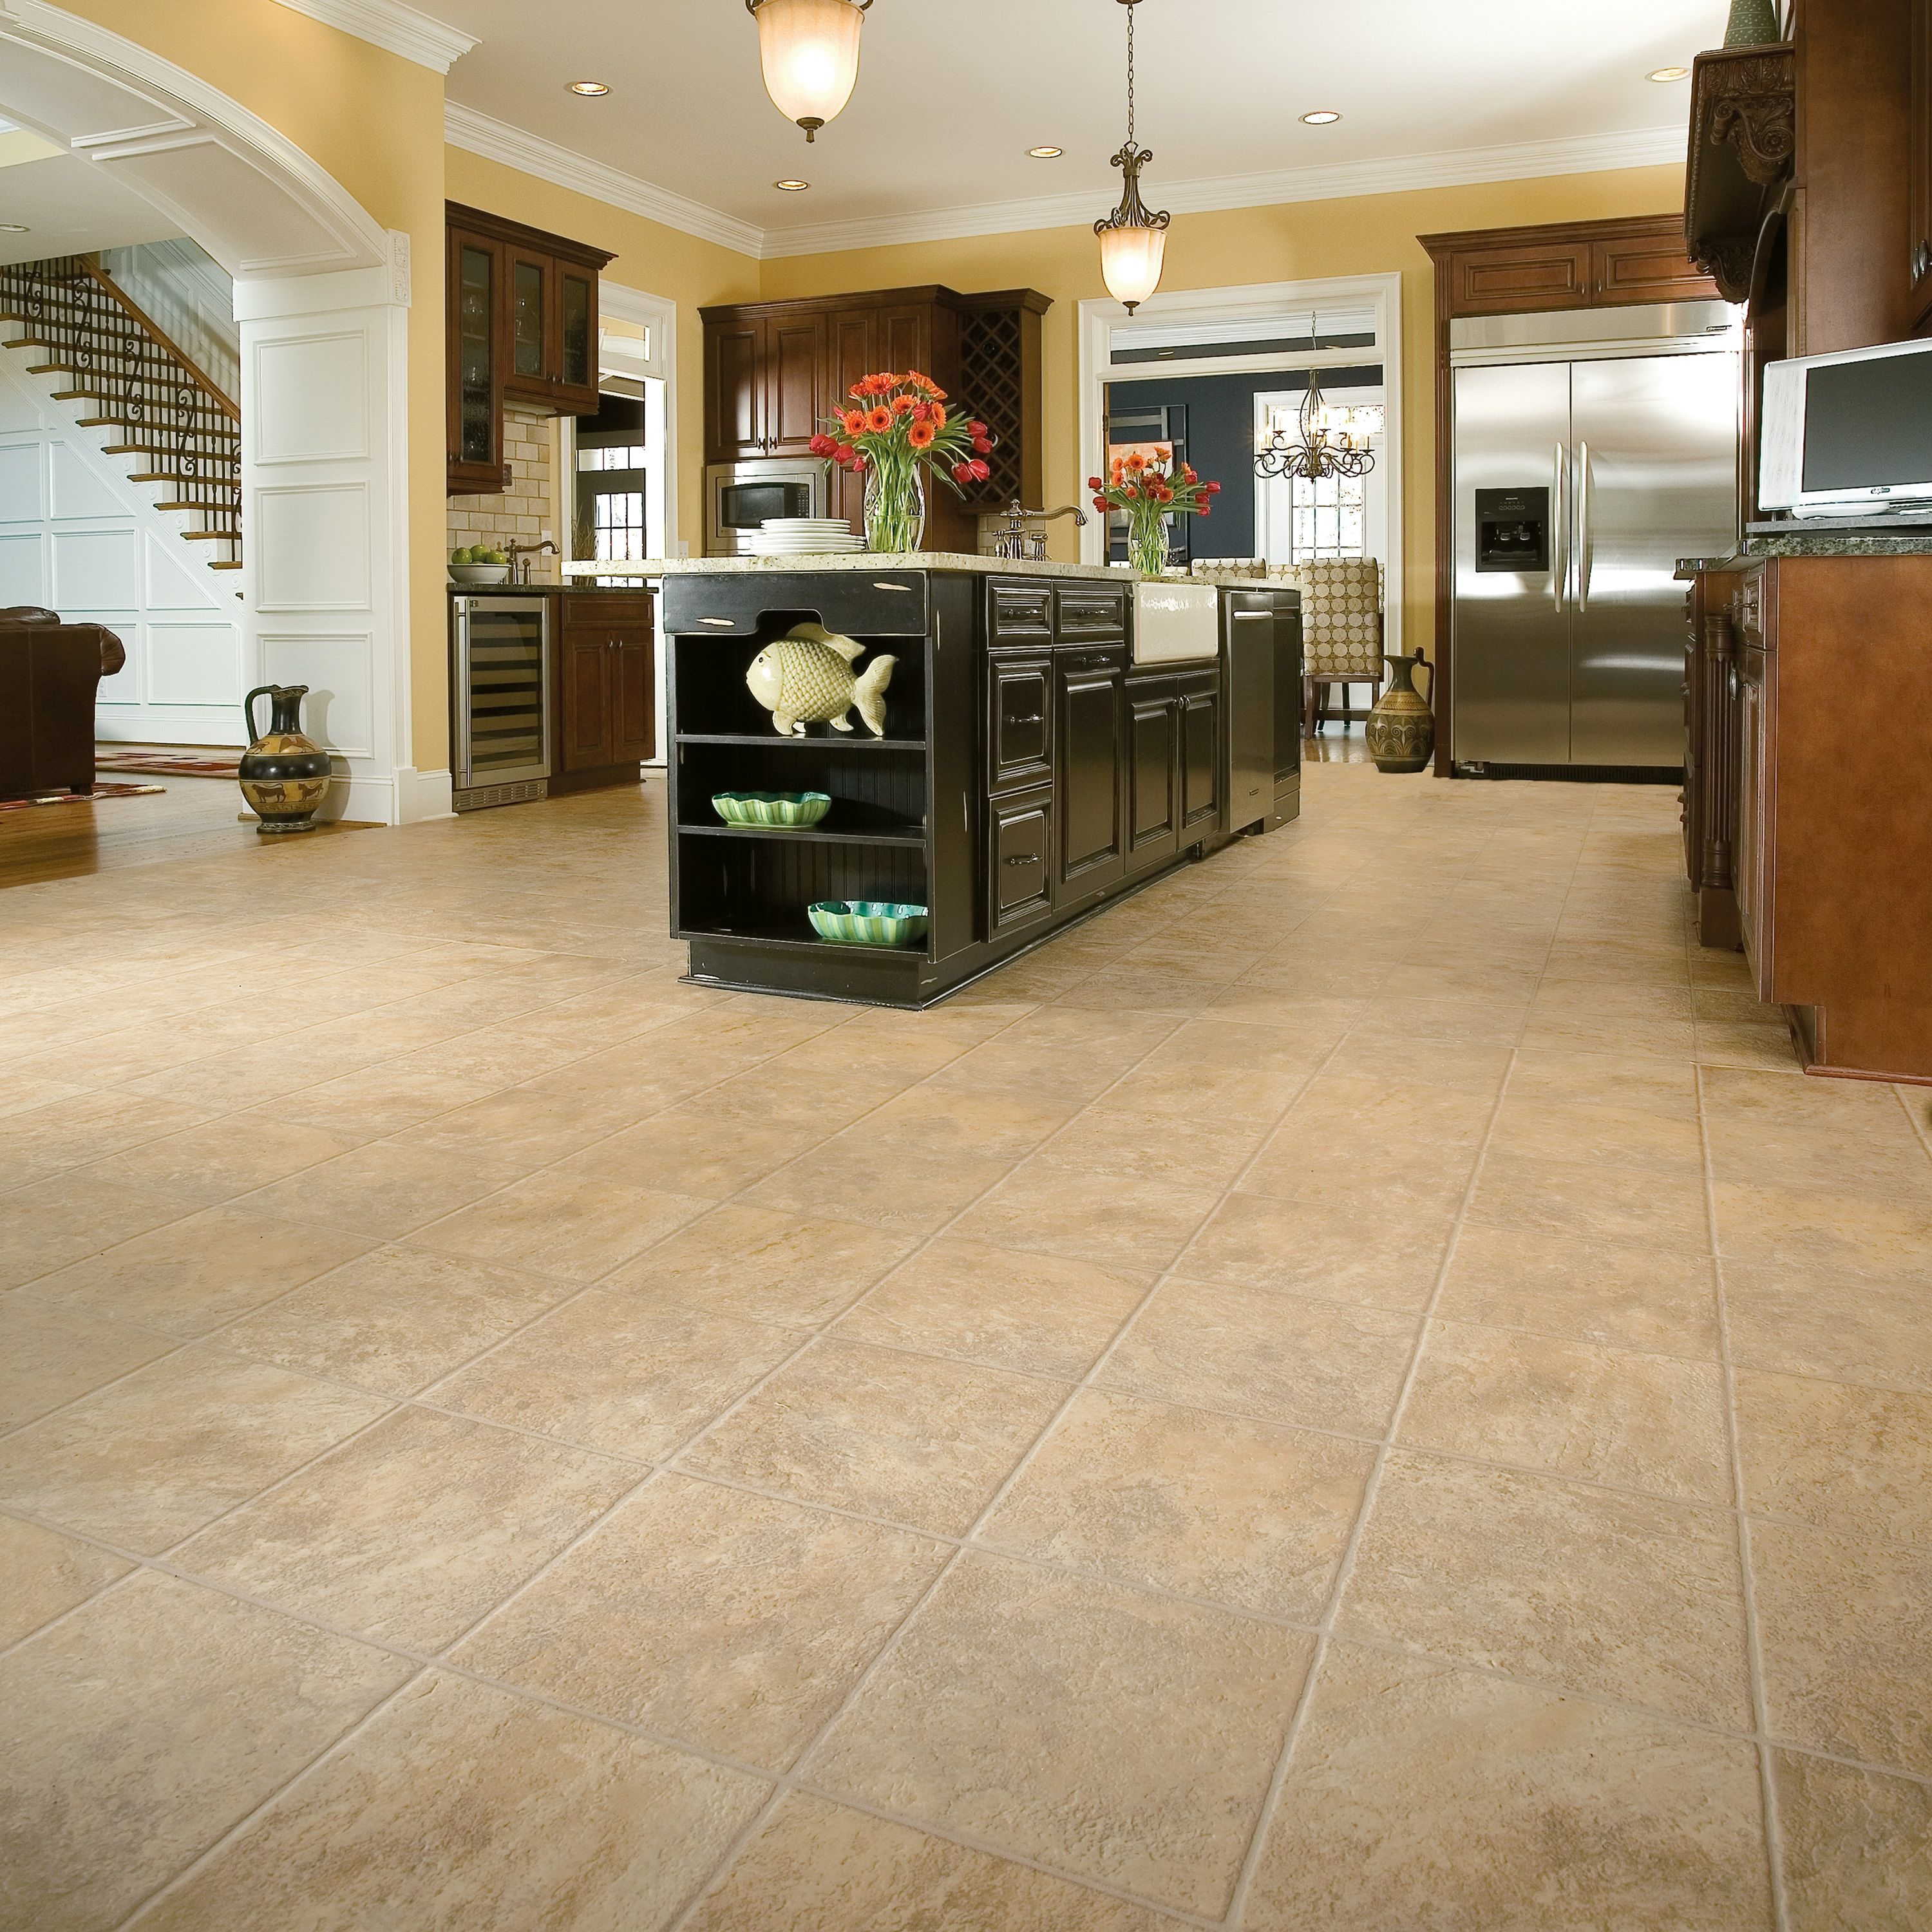 Vinyl flooring that looks like limestone Vinyl flooring